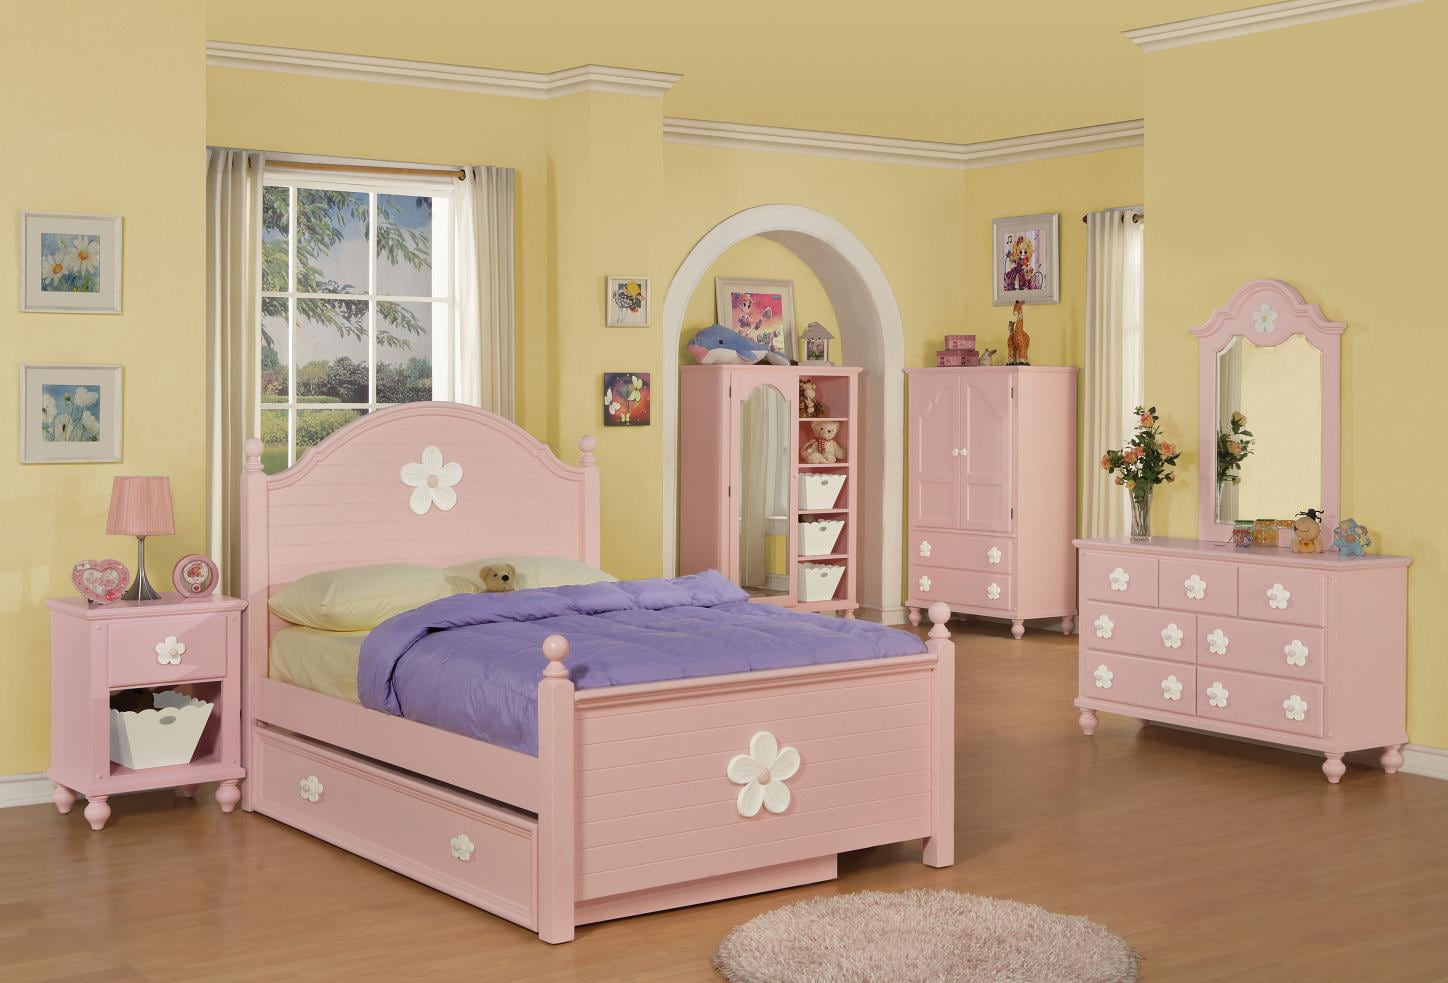 shop white and pink flower twin size bed free shipping today overstock 6287651. Black Bedroom Furniture Sets. Home Design Ideas